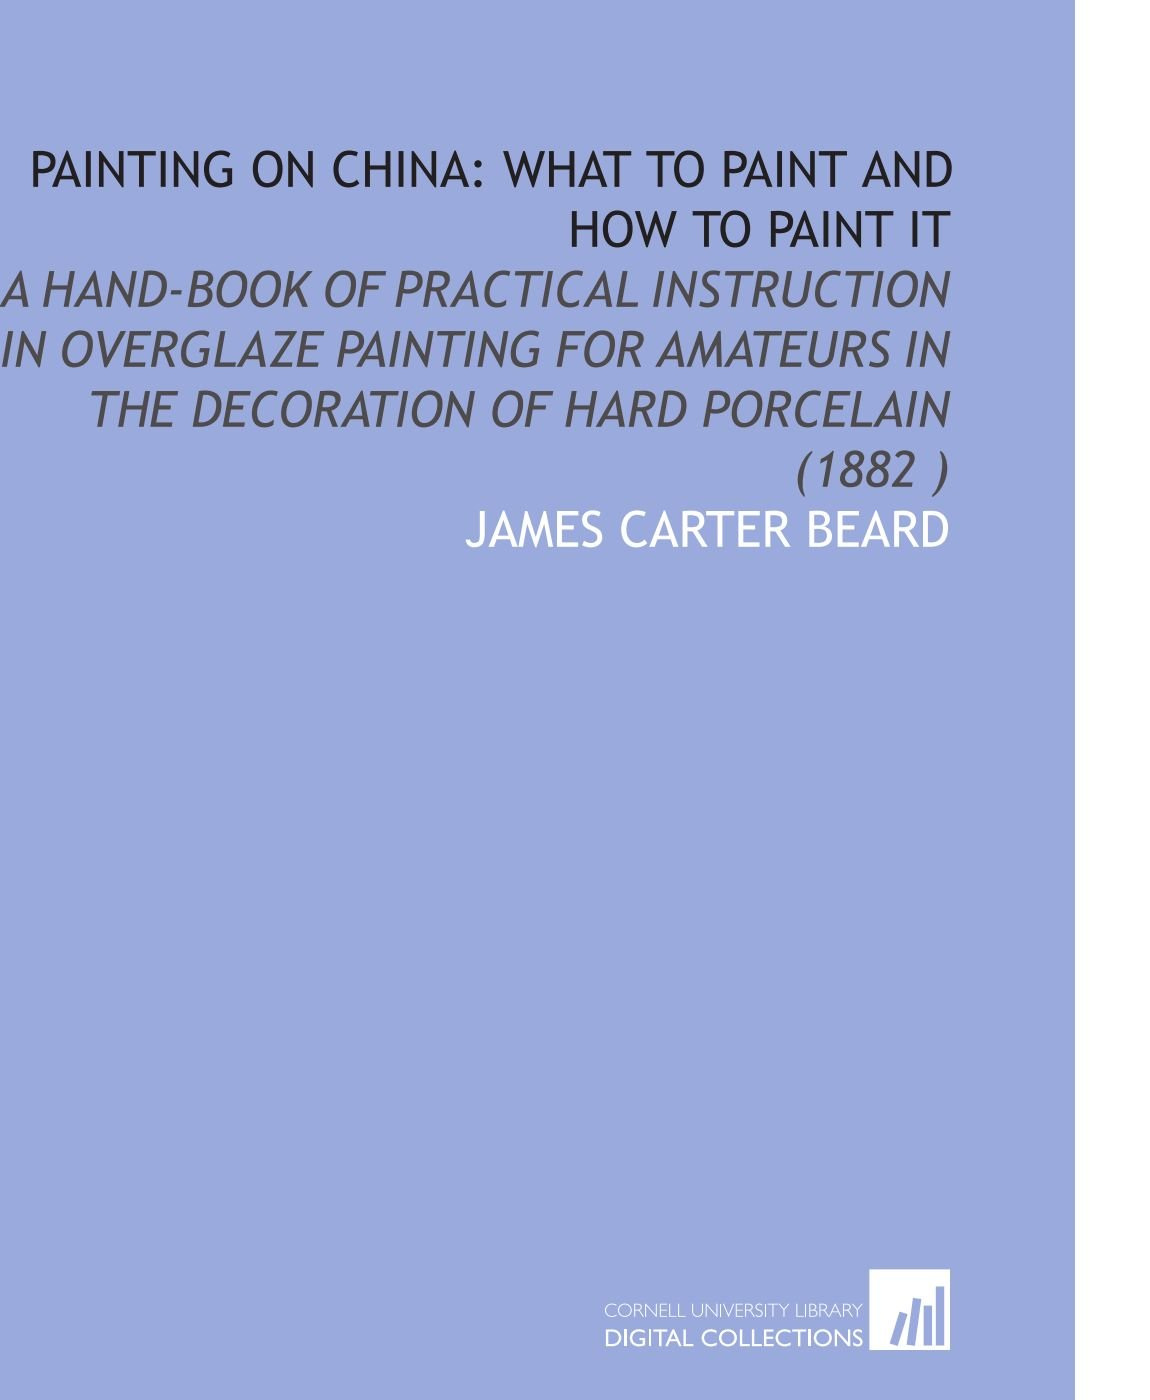 Read Online Painting on China: What to Paint and How to Paint it: A Hand-Book of Practical Instruction in Overglaze Painting for Amateurs in the Decoration of Hard Porcelain (1882) PDF